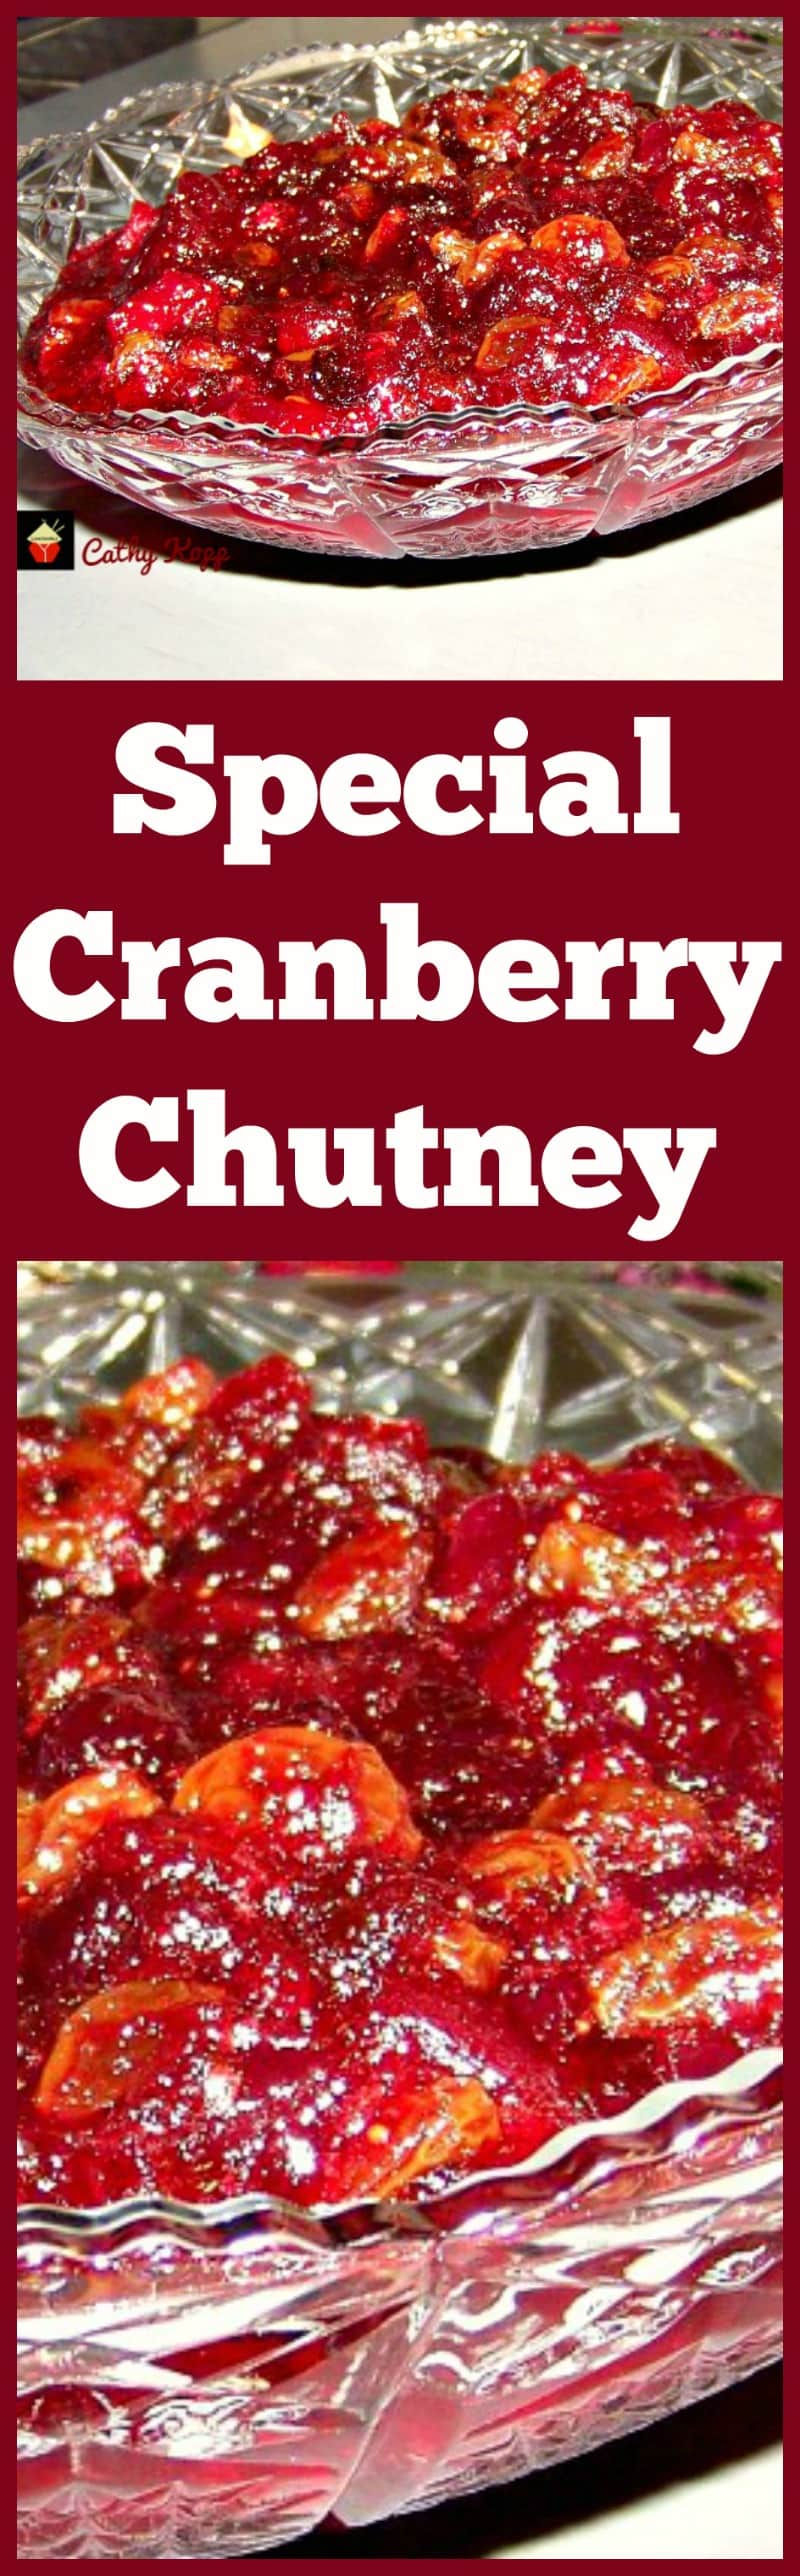 Special Cranberry Chutney. This is a wonderful recipe full of goodies! Loaded with cranberries, apple, orange, golden raisins and pecans. Only takes a very short time to make and great for freezing too! Serve as part of a dinner or with cold cuts. Always a hit at parties. | Lovefoodies.com